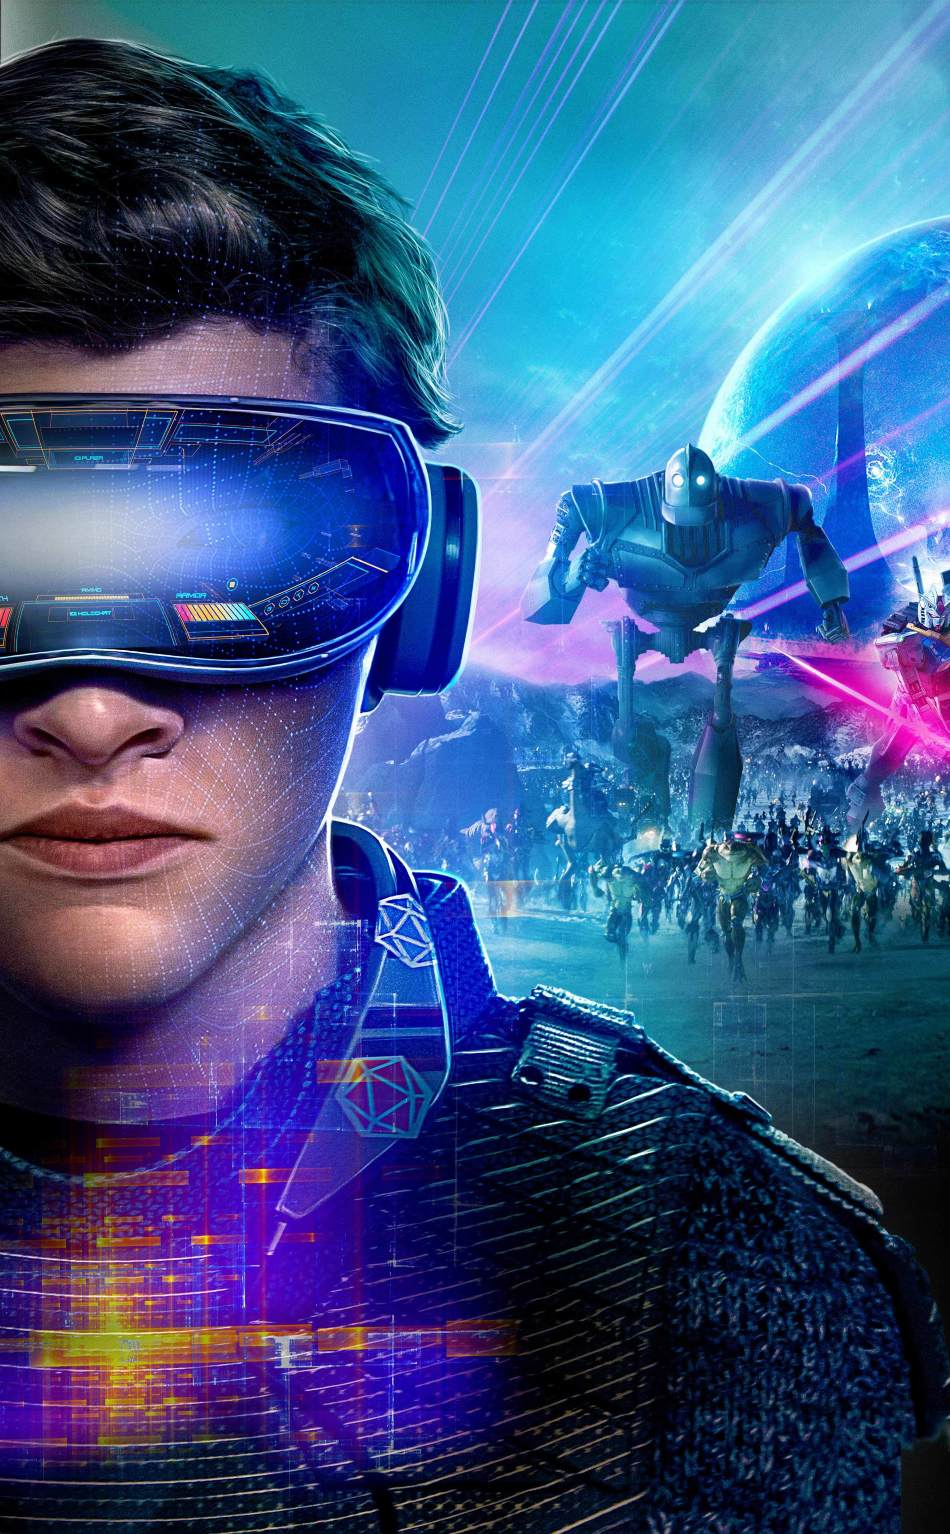 Download Ready Player One International Poster 540x960 Resolution